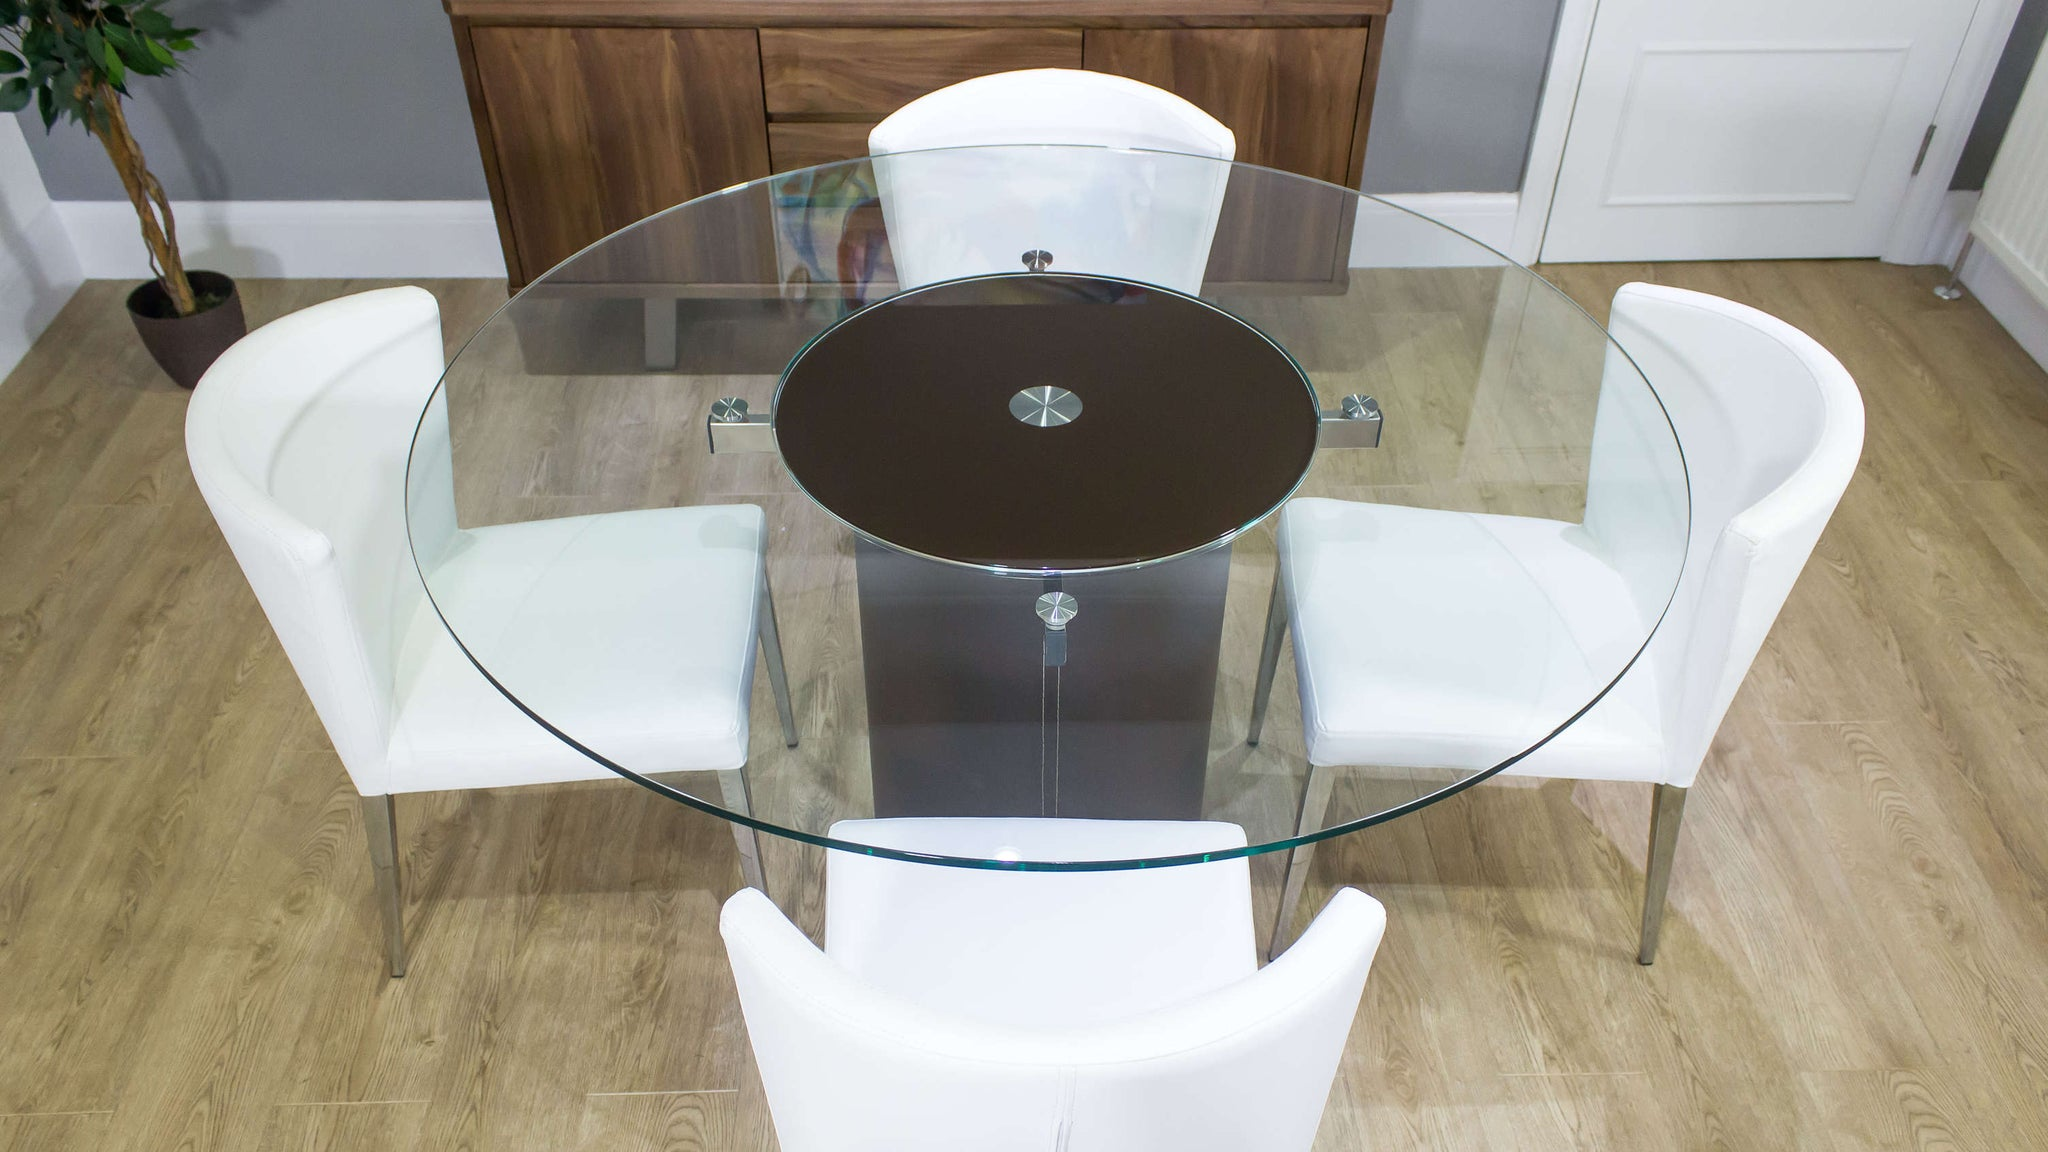 Dining Table with Spinning Lazy Susan and White Chairs